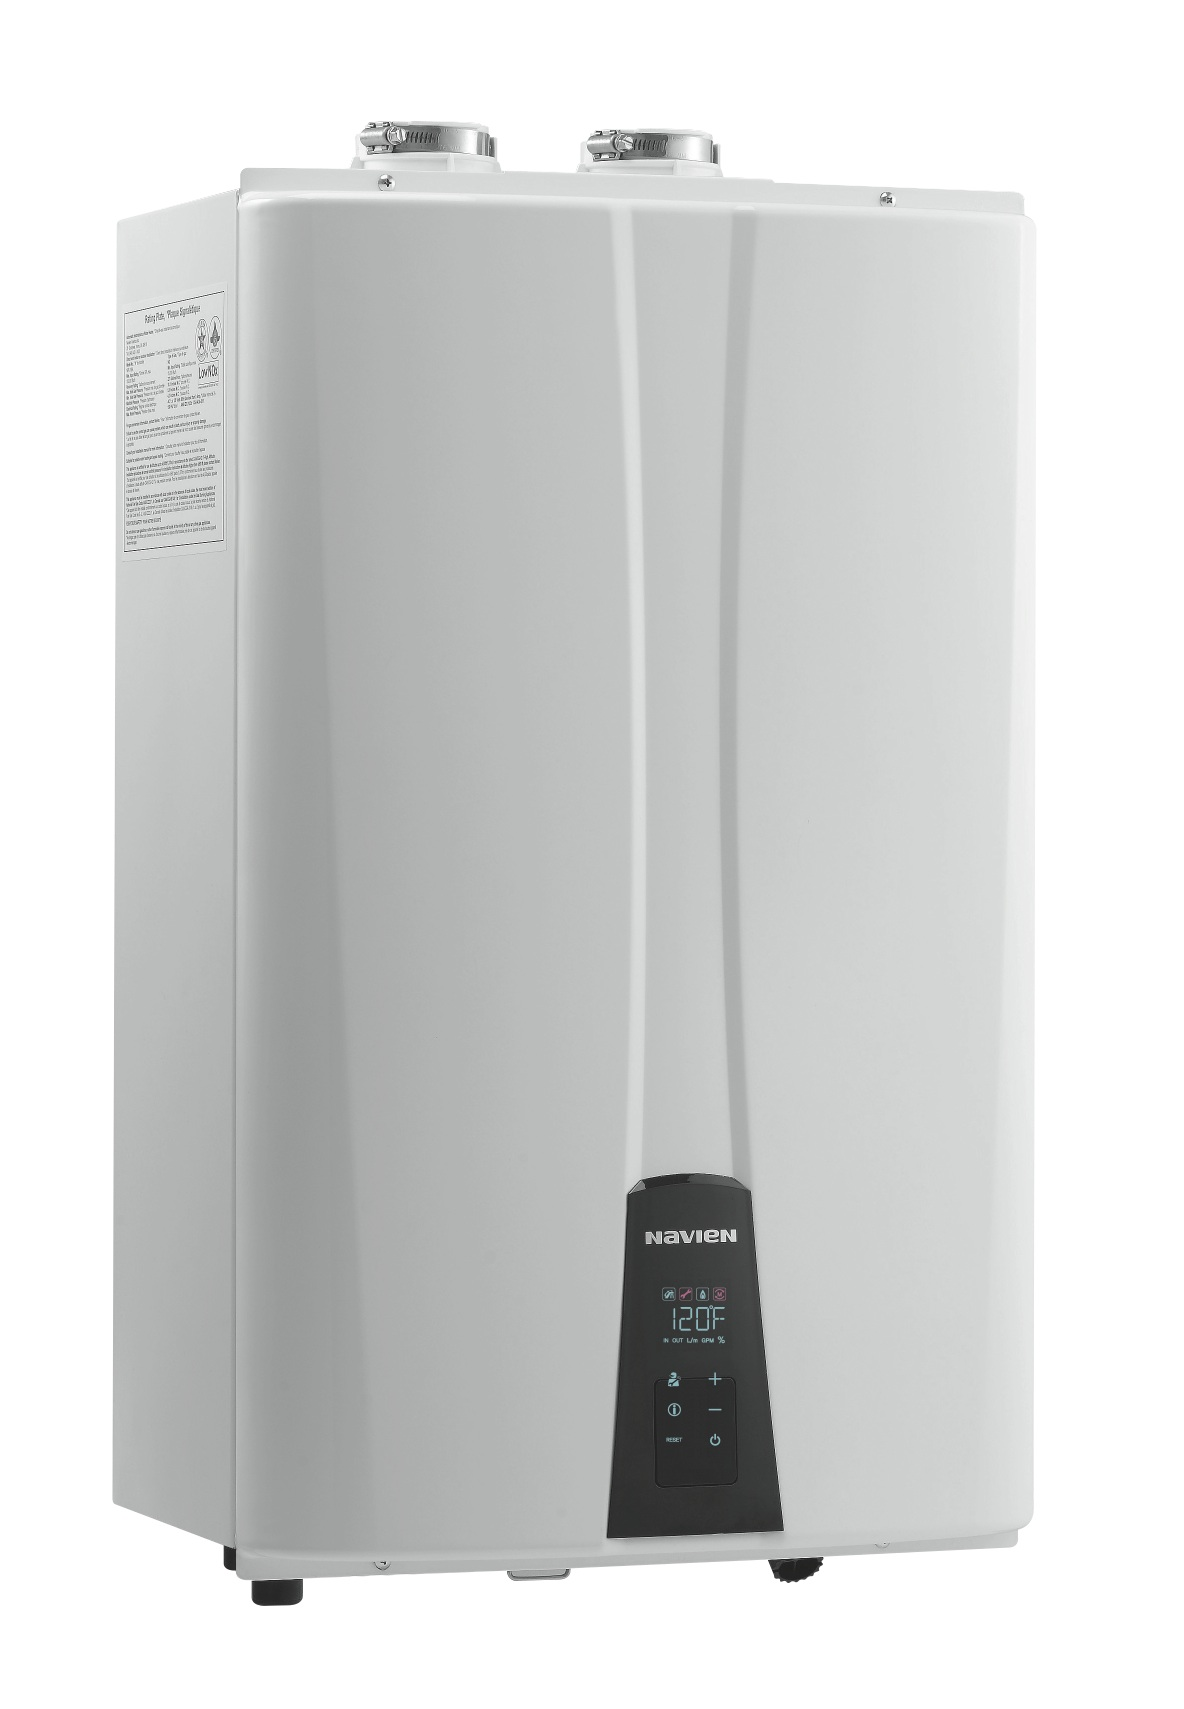 Hot water heater venting problems - Hot Water Heater Venting Problems 27